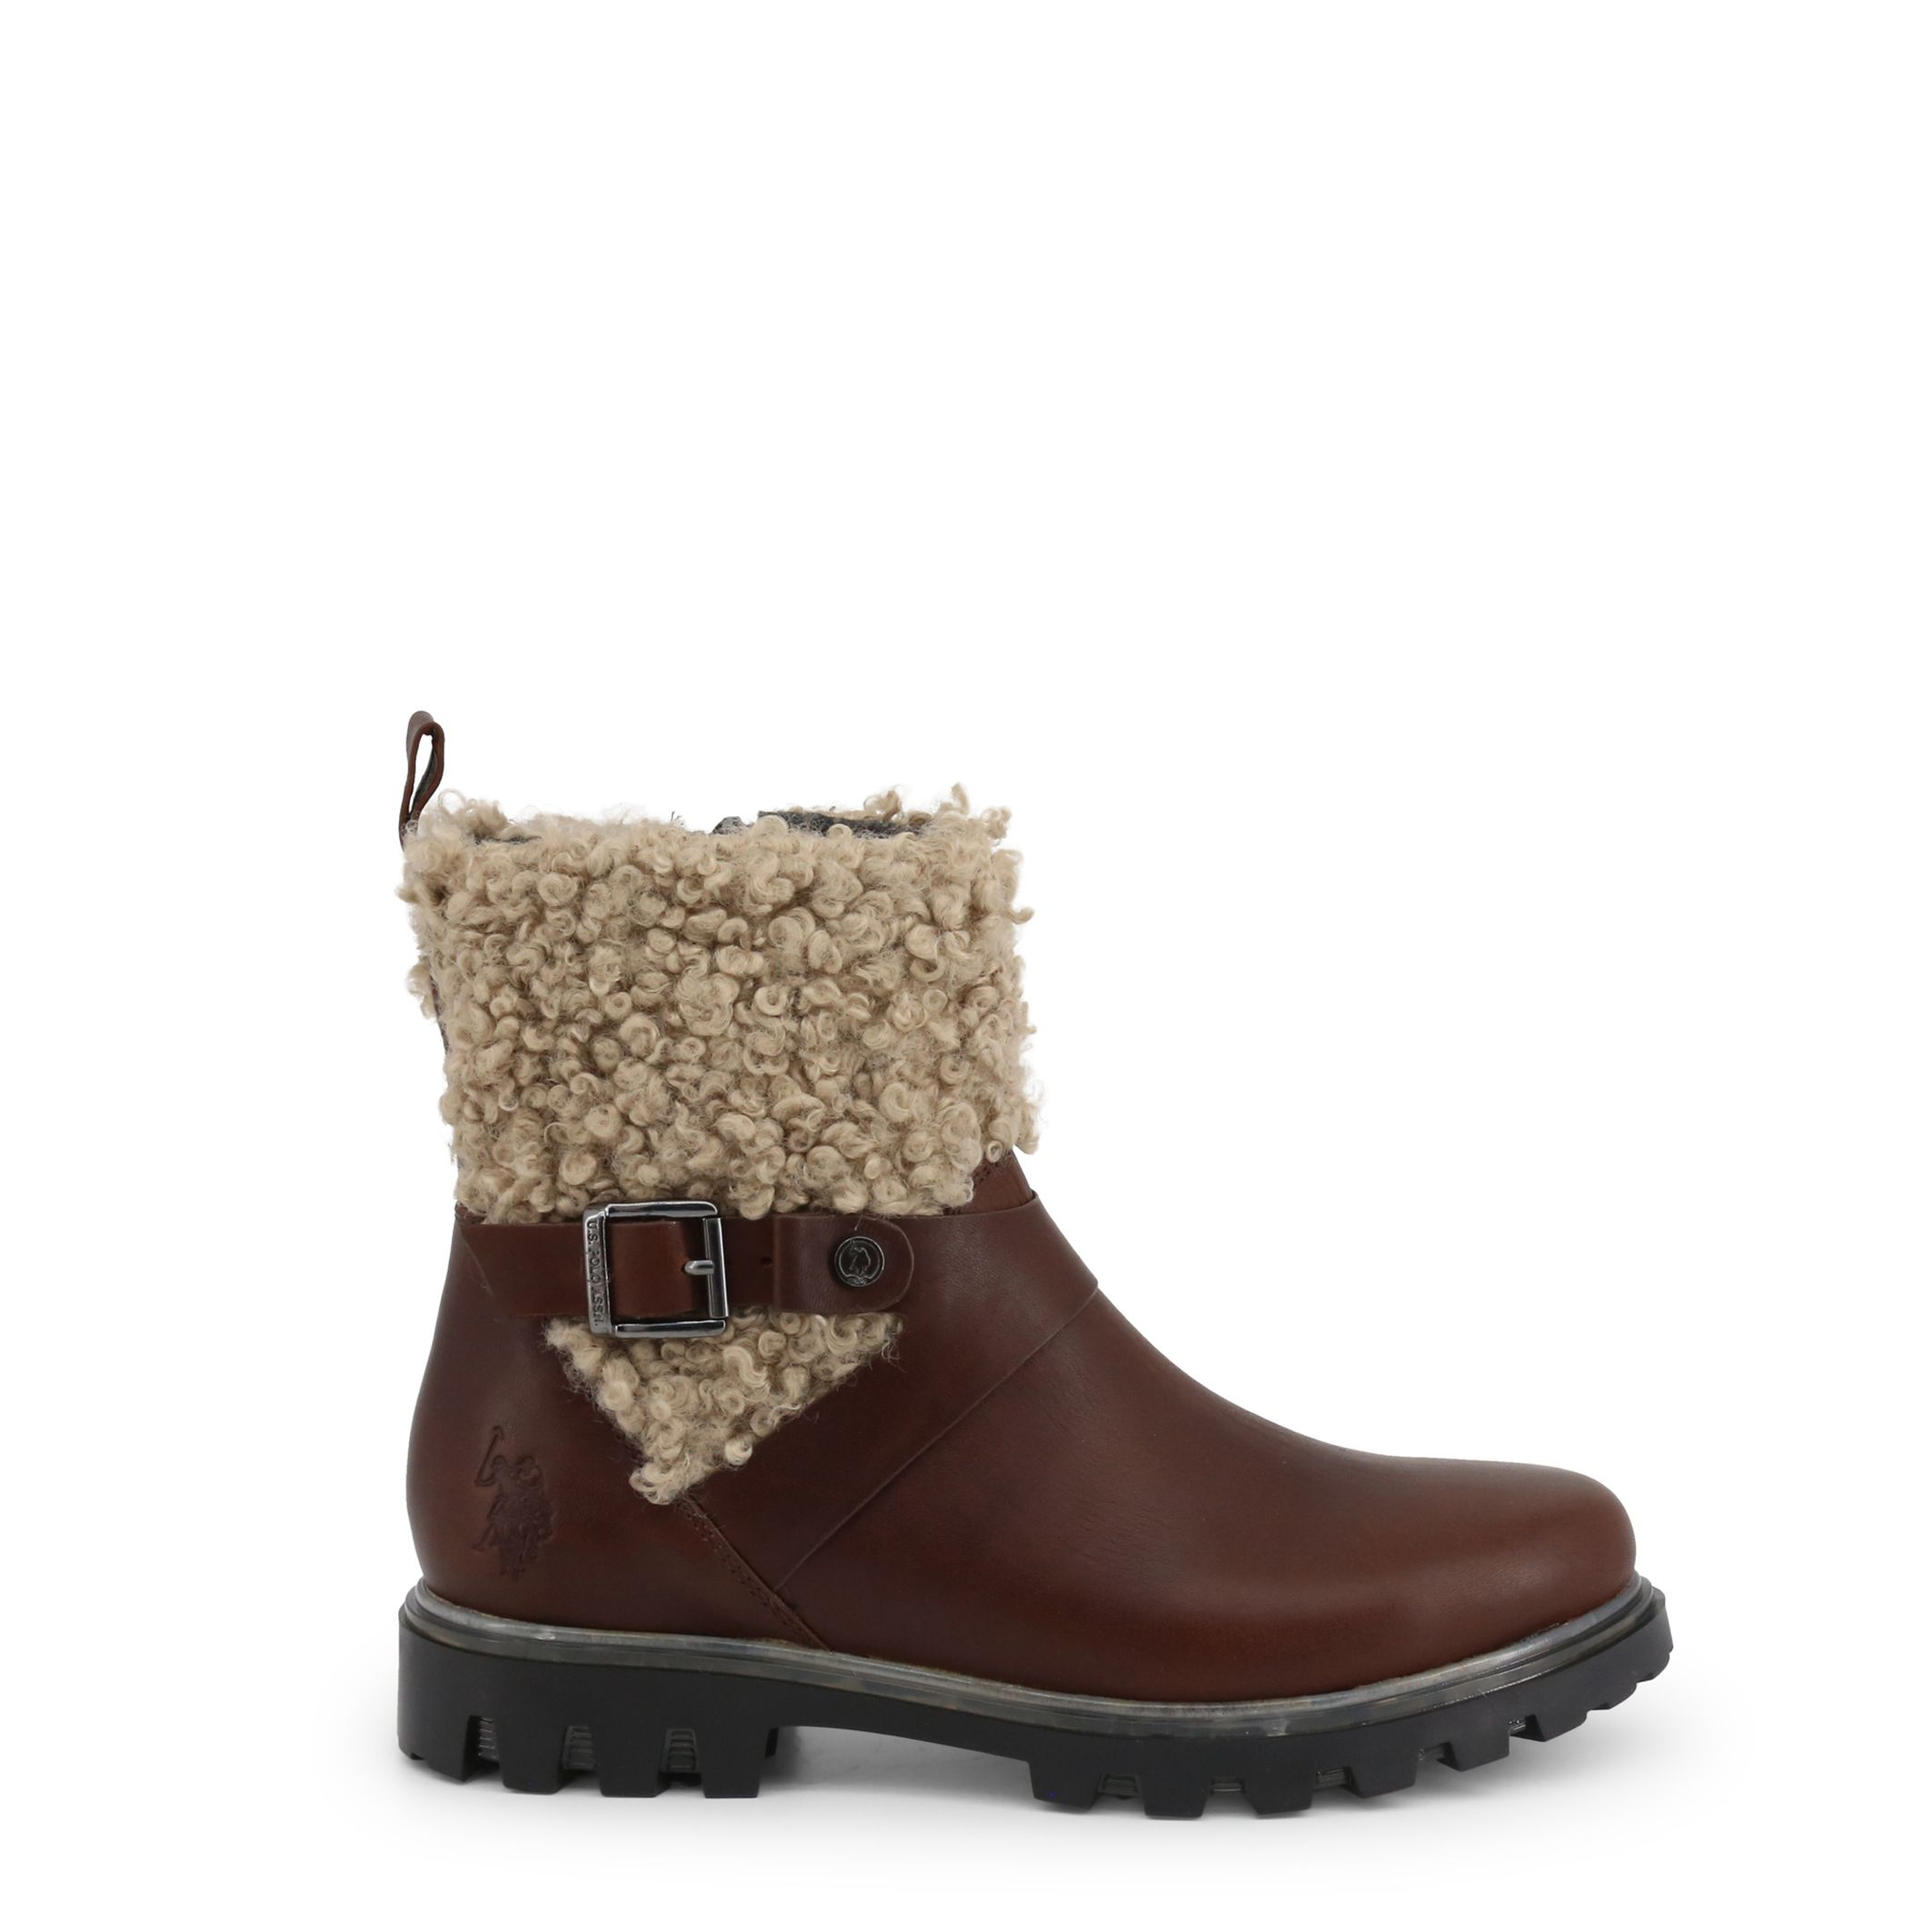 U.S. Polo Assn. Womens Ankle Boots